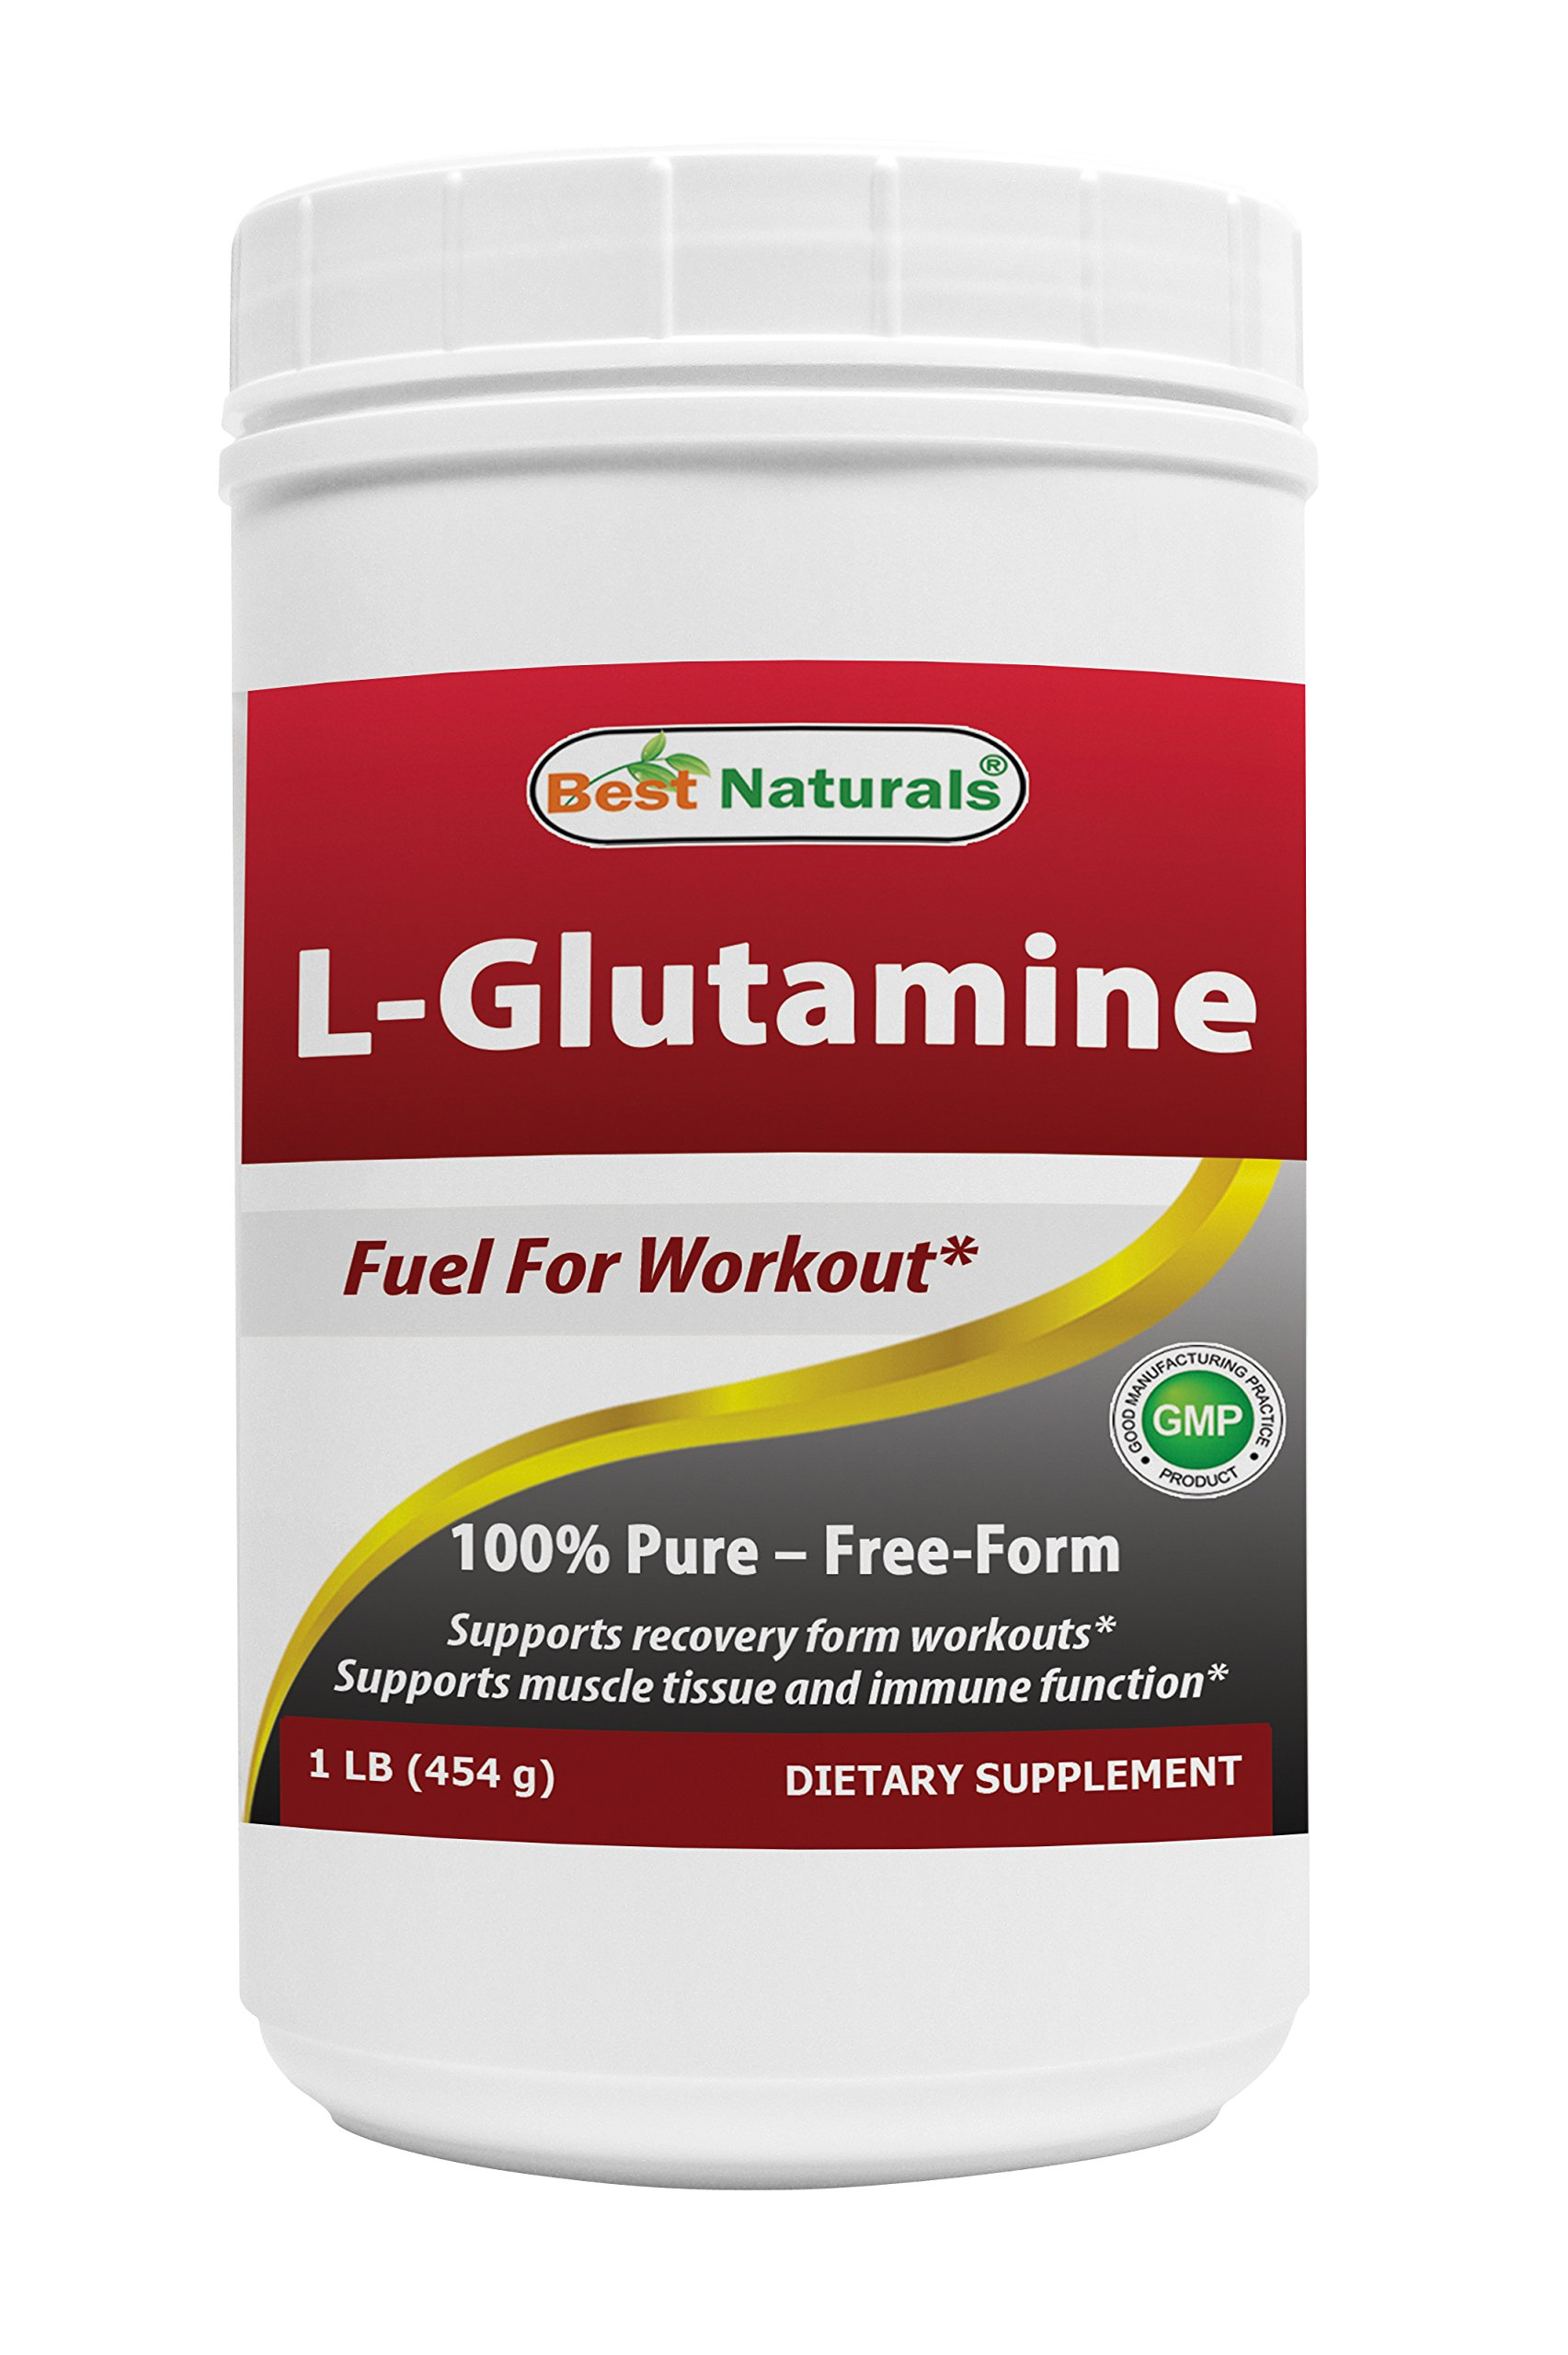 Best Naturals L-Glutamine Powder - 1 Pound - 100% Pure and free form - Glutamine Recovery Powder - Clinically Proven Recovery Aid for Men and Women